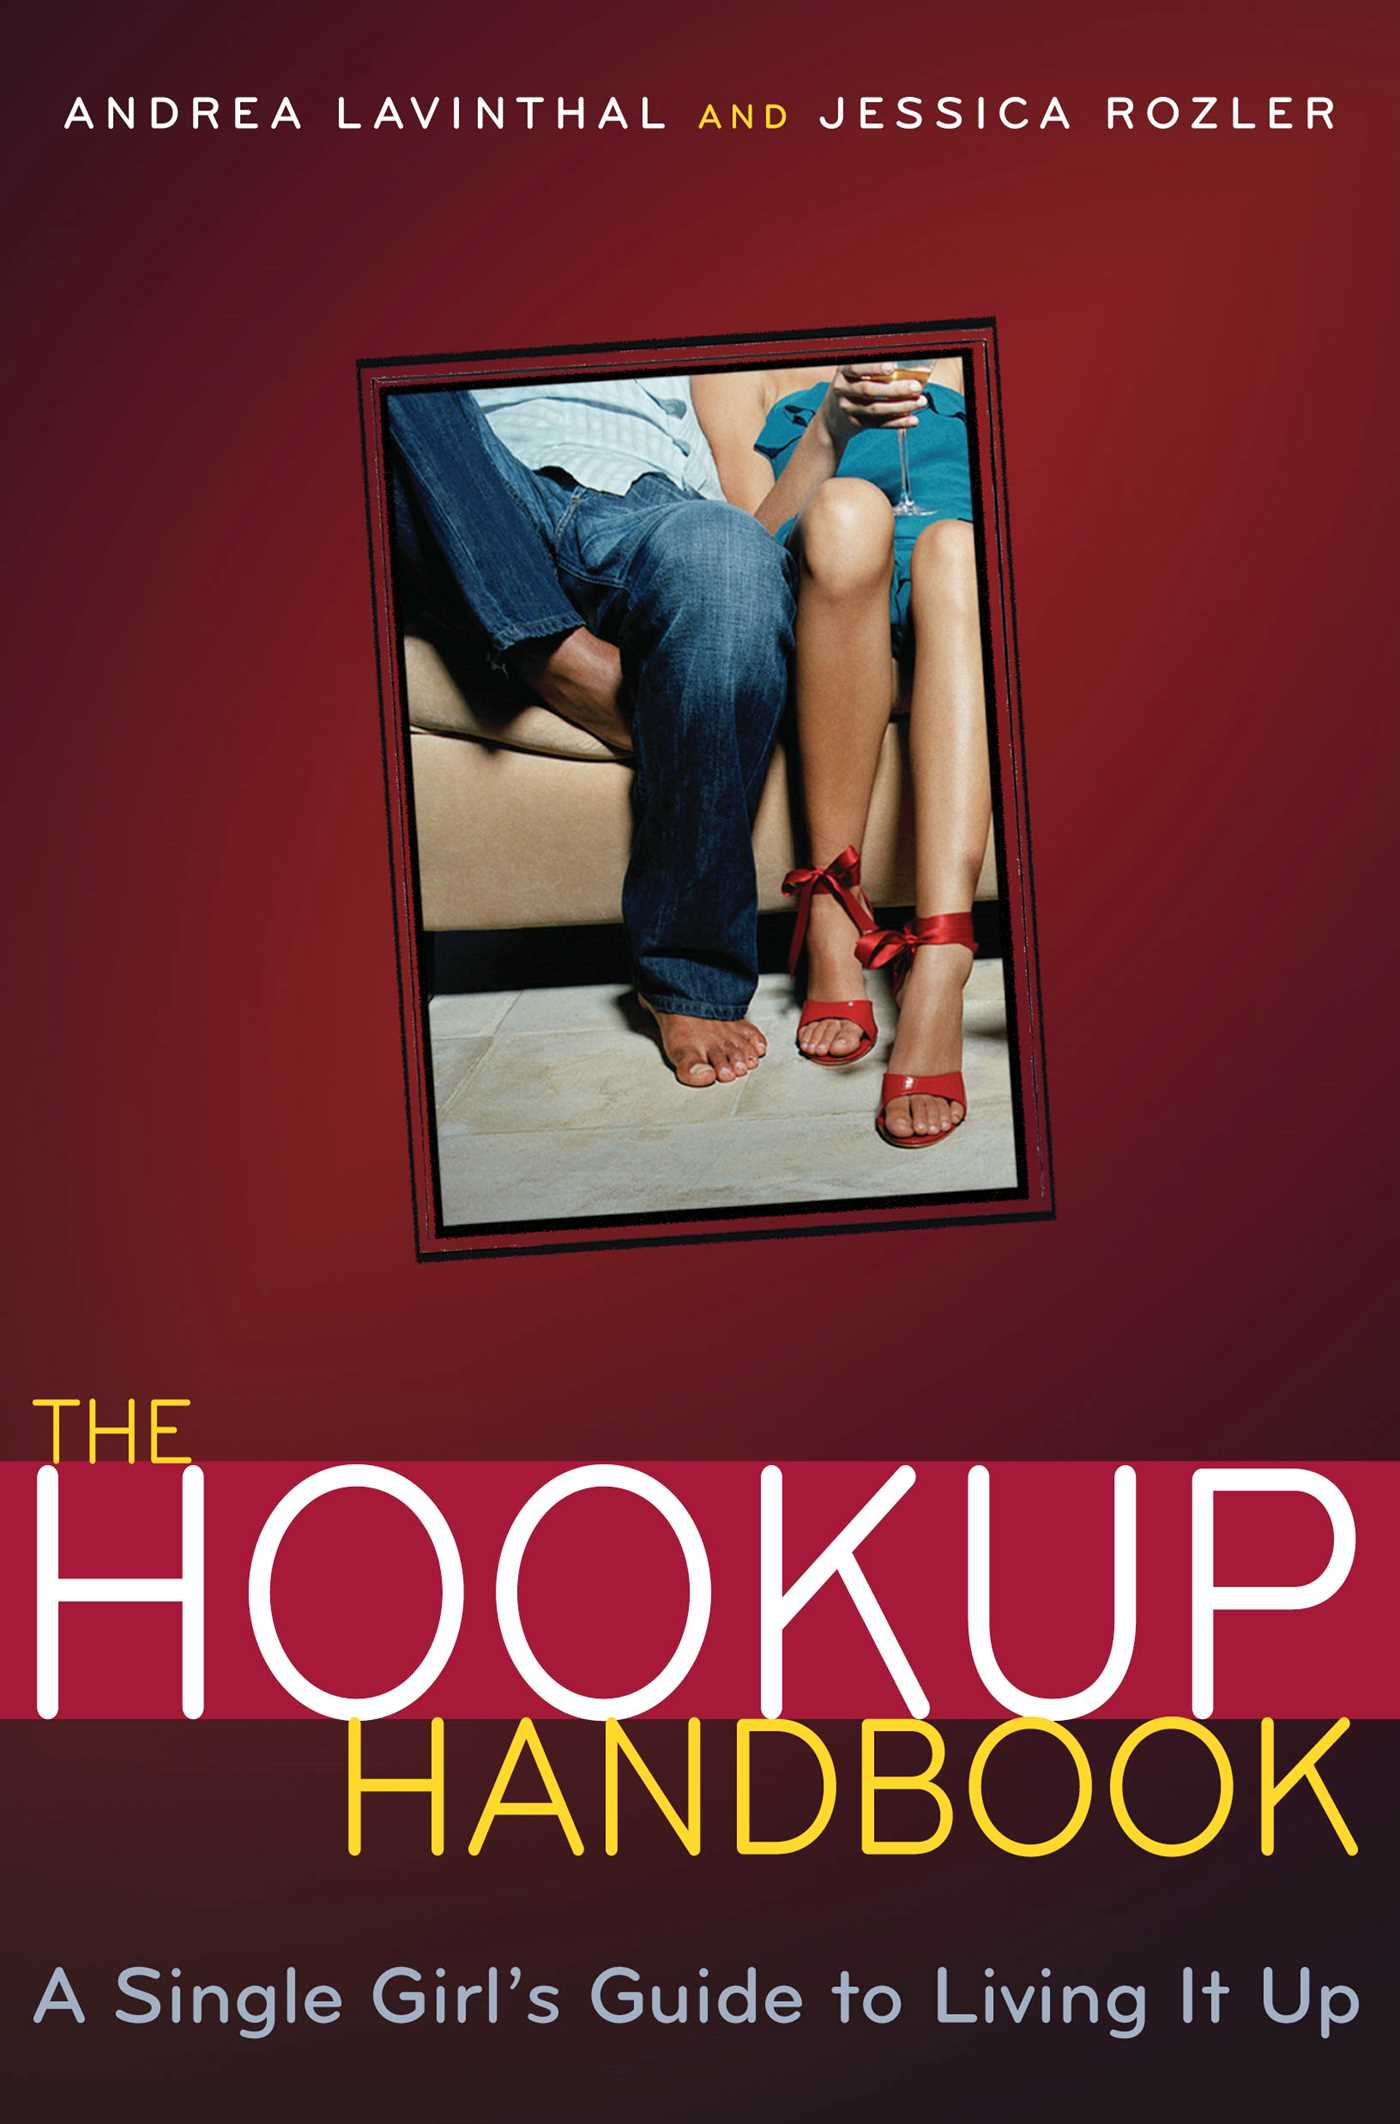 The hookup handbook 9781451603415 hr